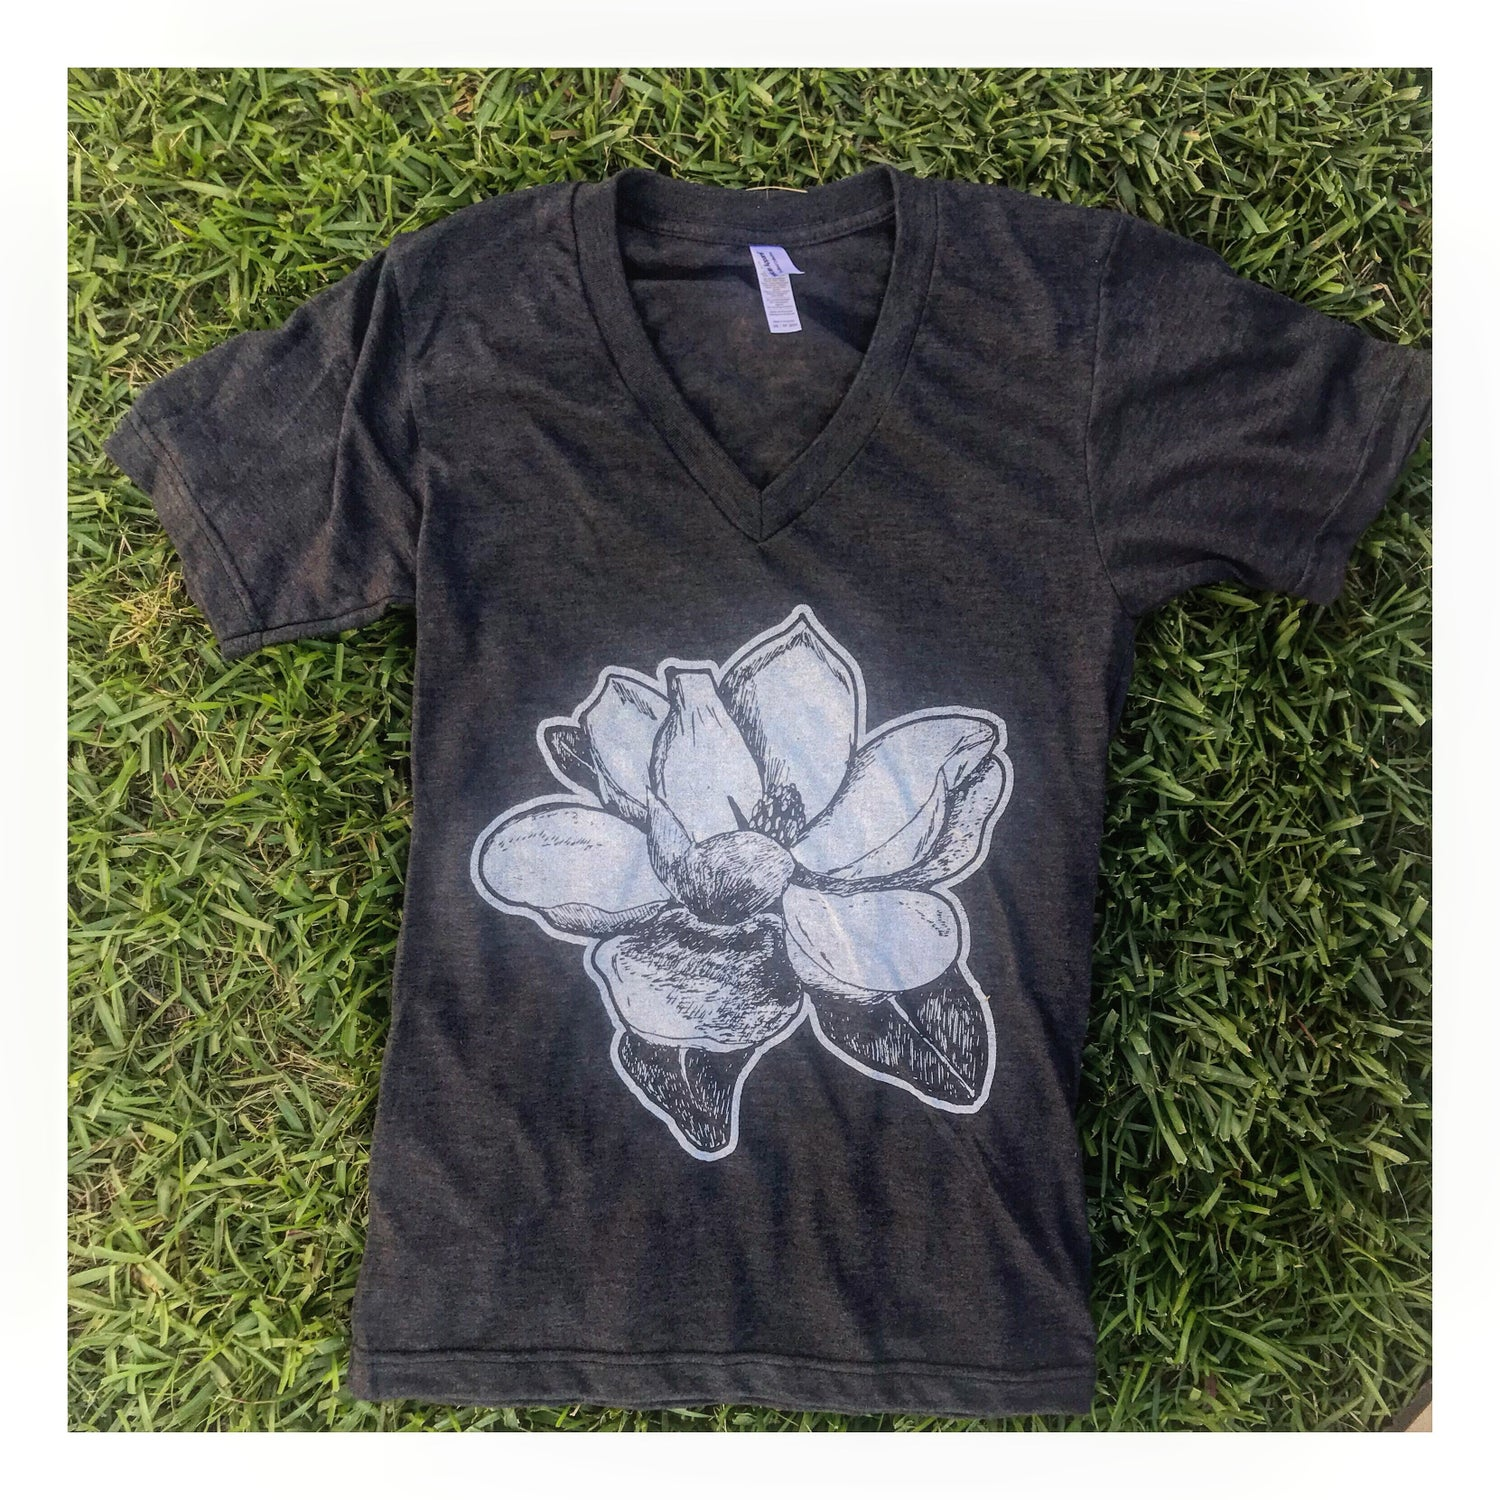 Image of Adult V neck Magnolia in Charcoal Black